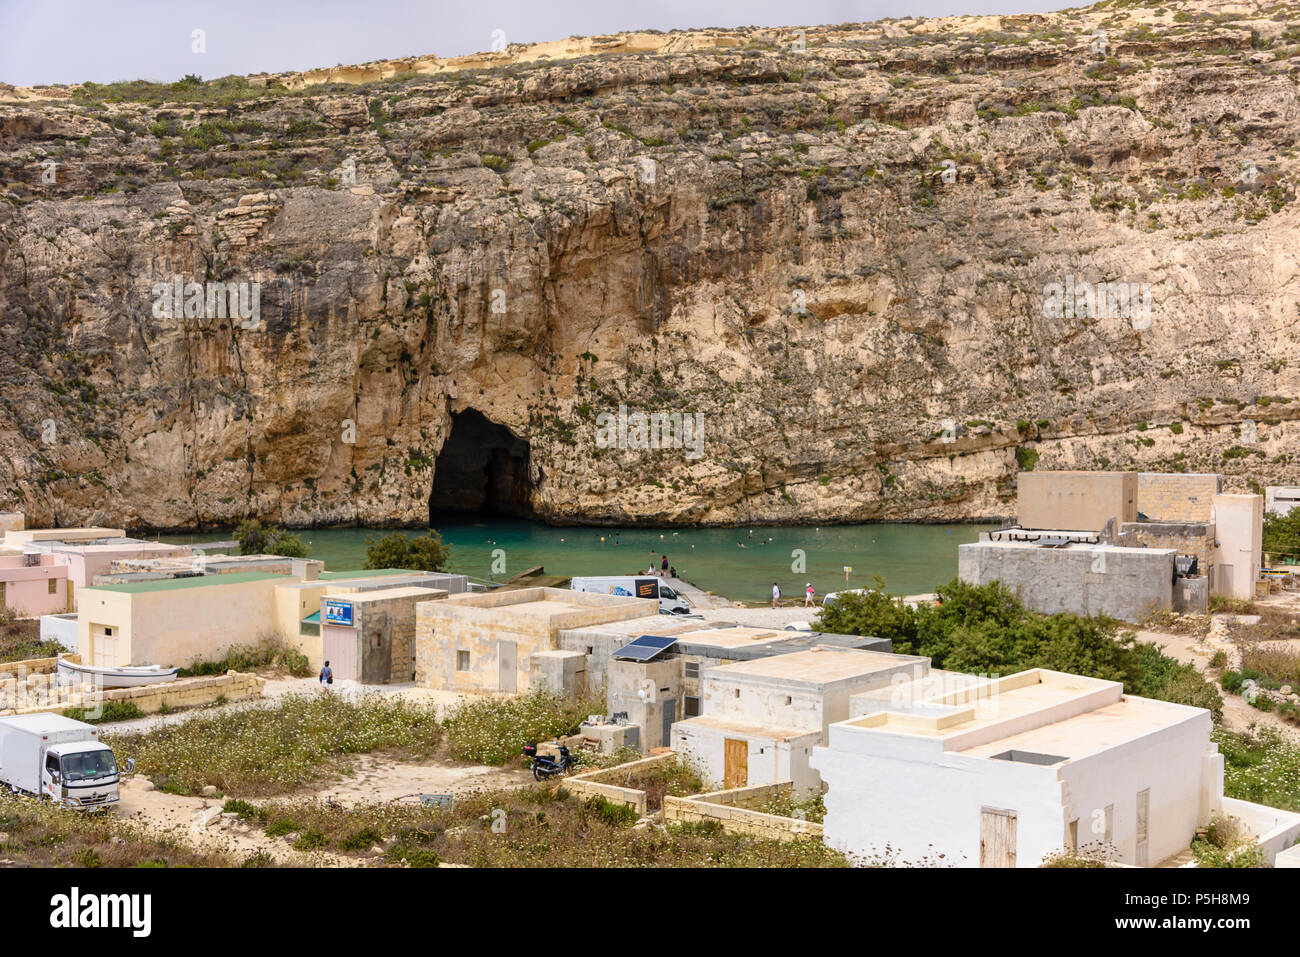 Dwerja, the inland sea, Gozo, Malta.  The cave joins with the Mediterranean sea on the other side of the cliff. - Stock Image